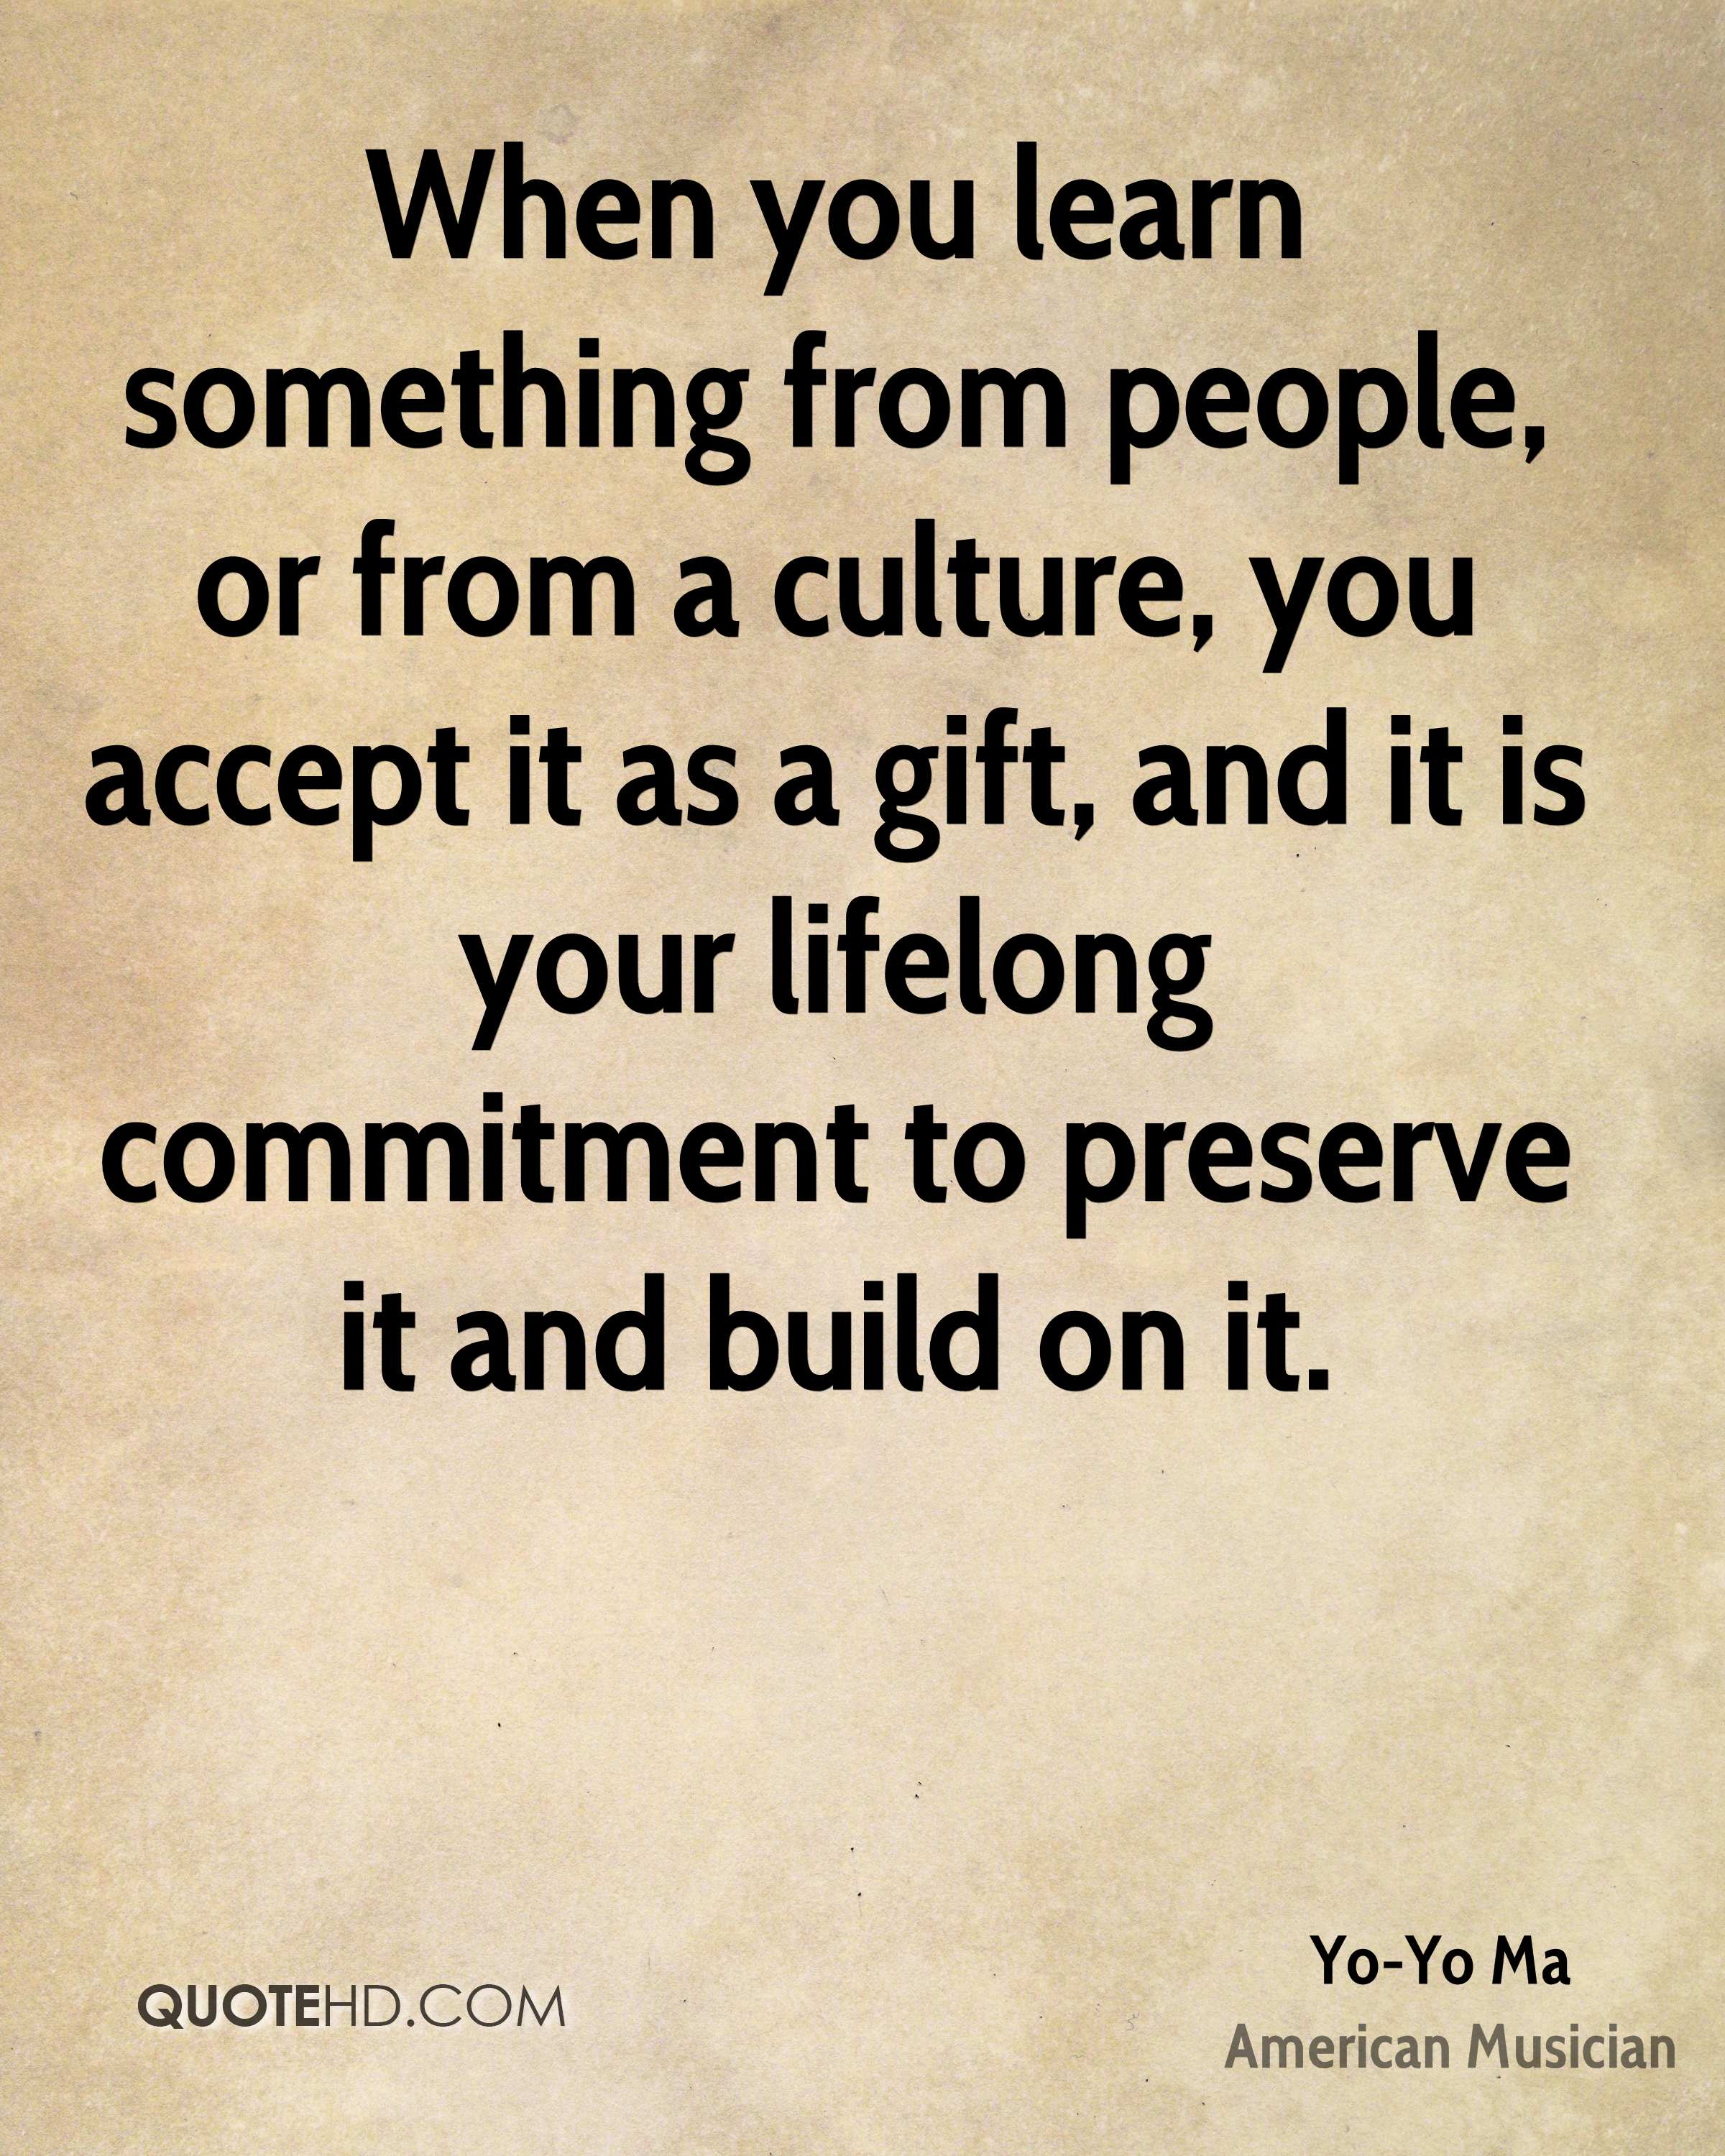 When you learn something from people, or from a culture, you accept it as a gift, and it is your lifelong commitment to preserve it and build on it.